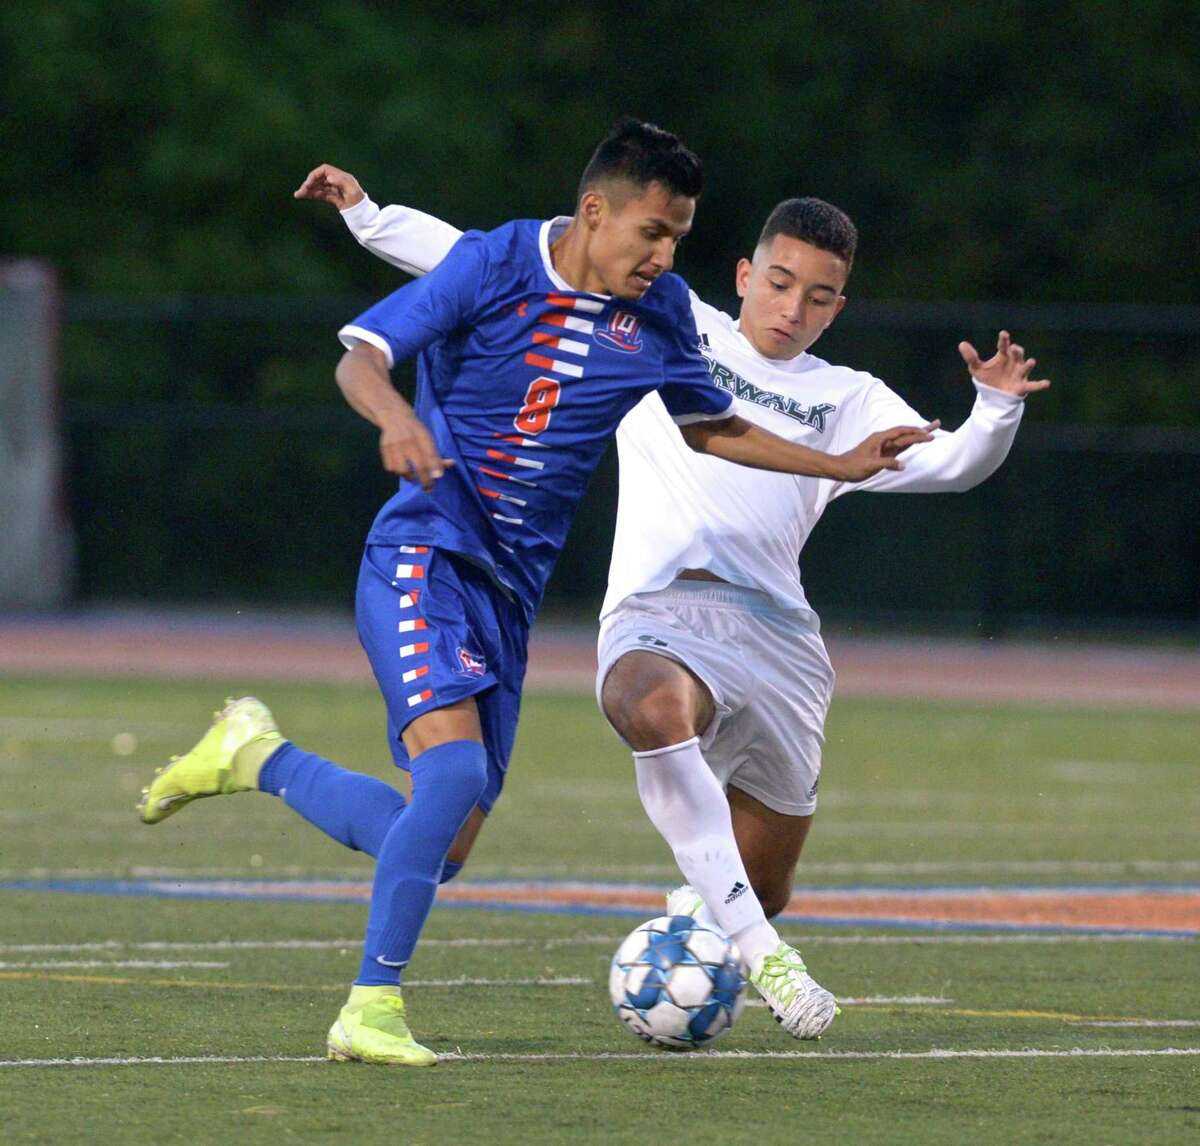 Danbury's Jeremy Garcia (8) and Norwalk's Mateo Cano (9) battle for the ball in the boys soccer game between Norwalk and Danbury high schools. Wednesday night, October 7, 2020, at Danbury High School, Danbury, Conn.